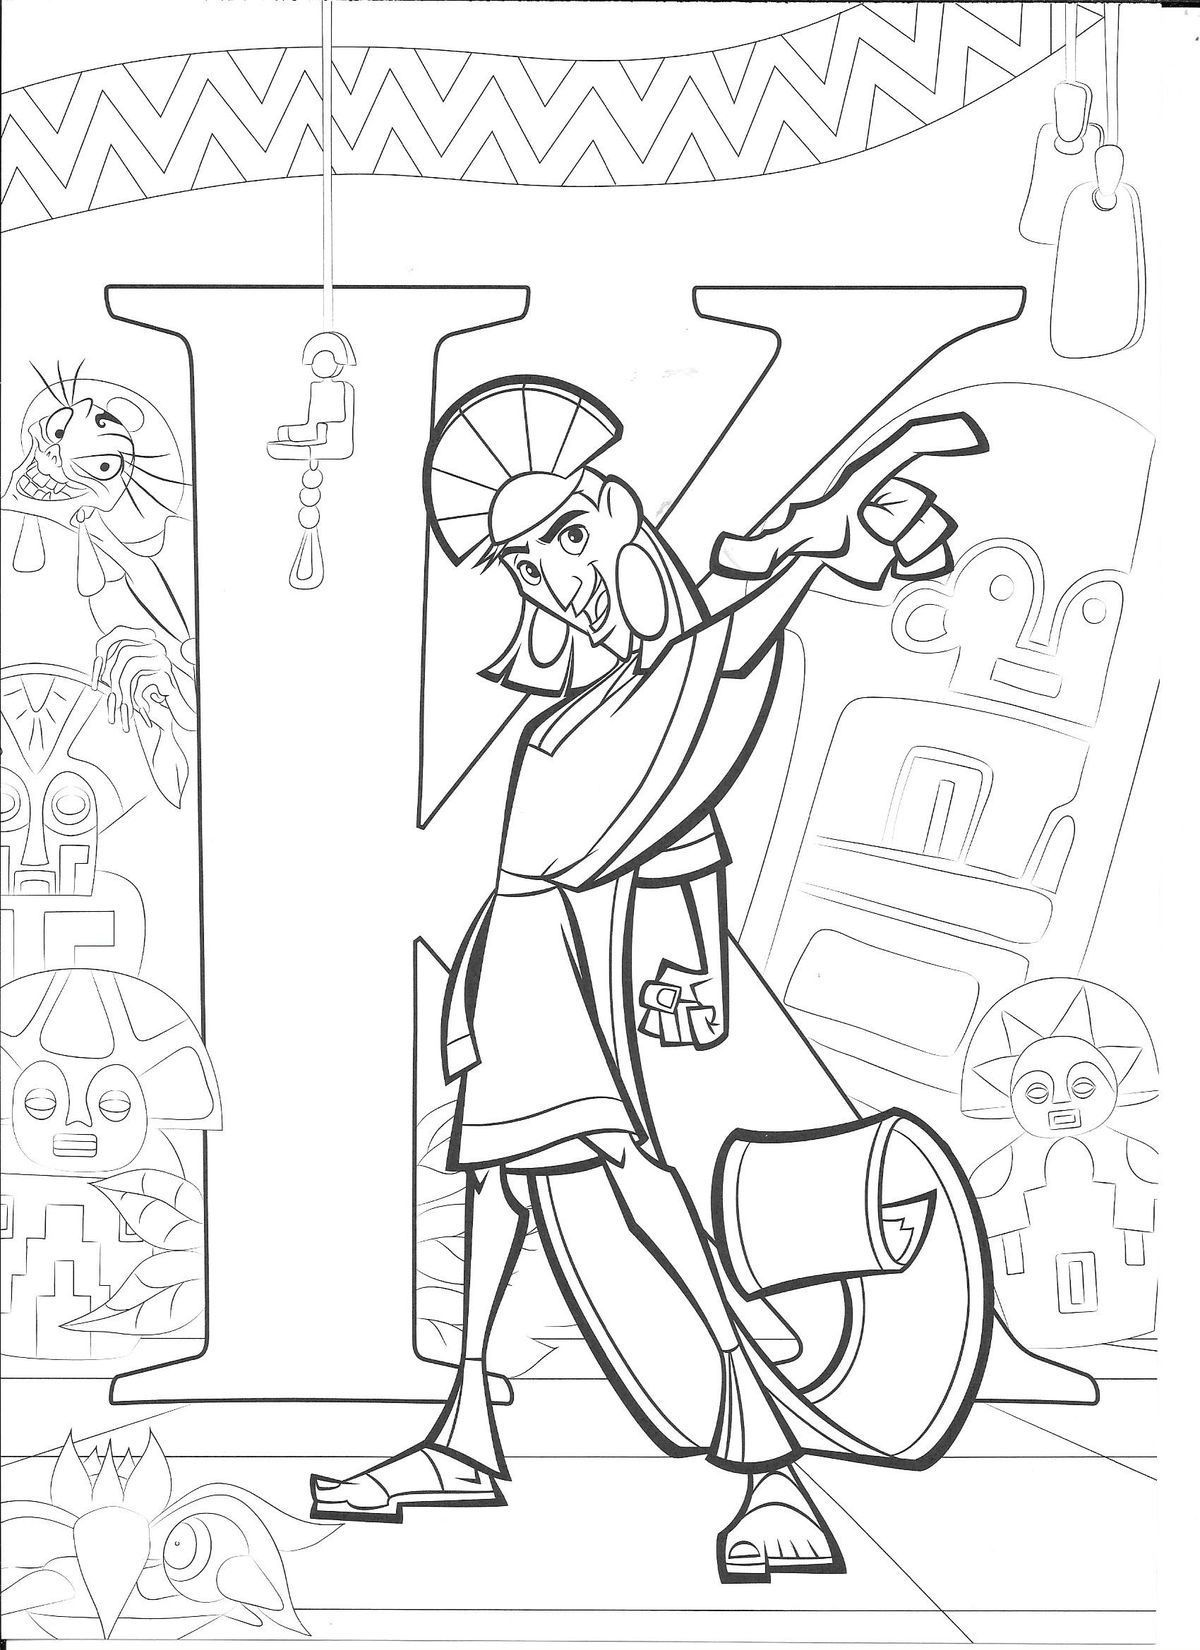 Pin By Mj Guerrero On Alphabet Coloring Sheets Disney Abc Coloring Pages Abc Coloring Disney Coloring Pages Printables [ 1650 x 1200 Pixel ]